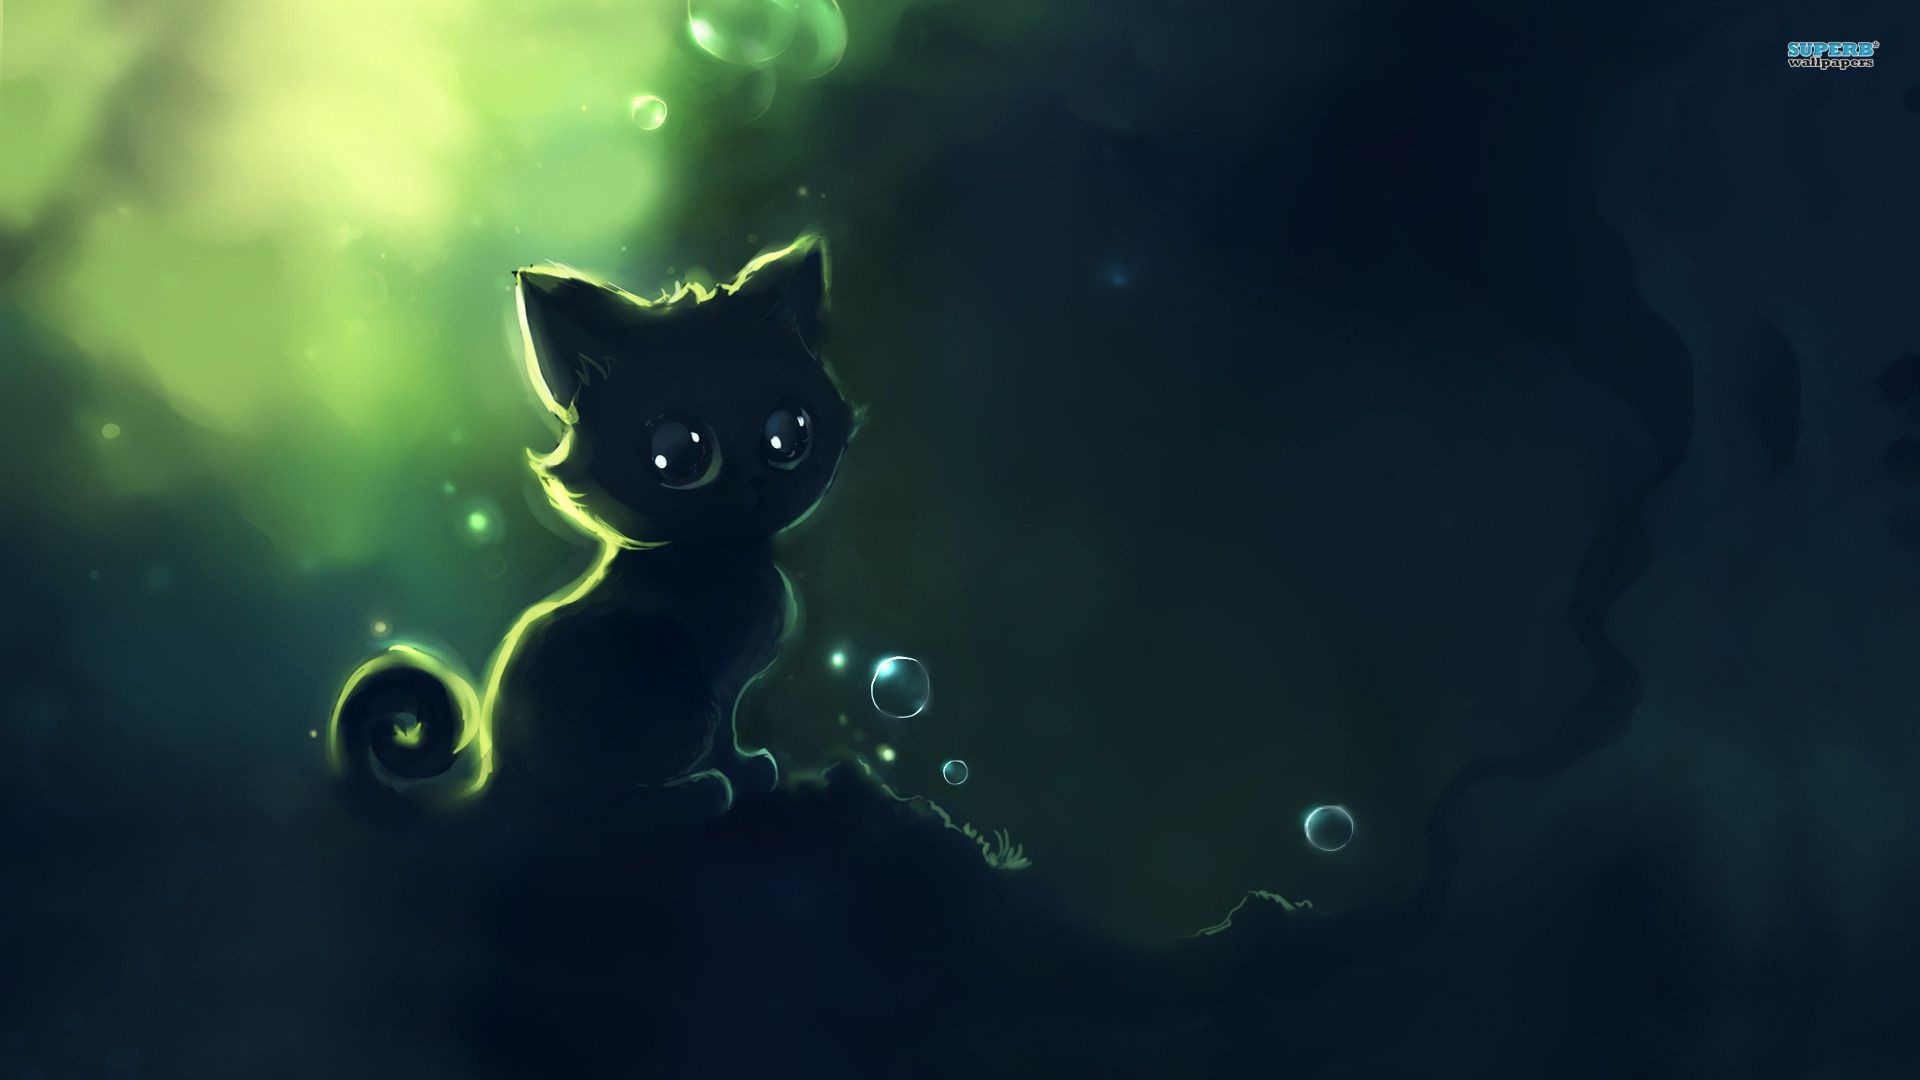 2048x1365 Space Cat Wallpapers High Quality For Desktop Wallpaper